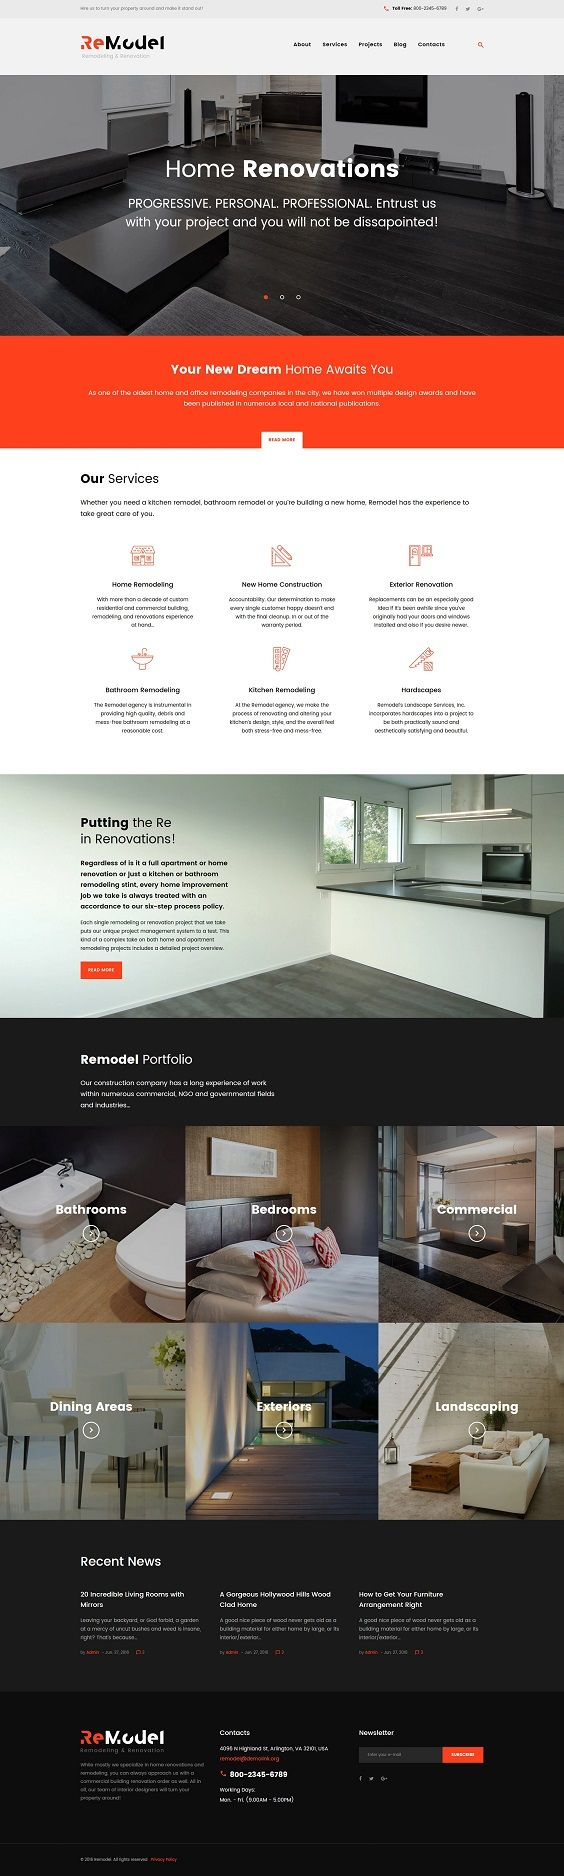 Remodeling WordPress Theme was exclusively created for remodeling, renovation architecture and interior design sites. Website slider provides for an intuitive navigation and capturing the attention, animated presentation on your site will take visitors breath away. Flashy call-to-action buttons will twice up the conversion rate and increase the profitability of your site. Thanks to clean and minimalist design, this template will help you to seamlessly guide visitors to become your clients…